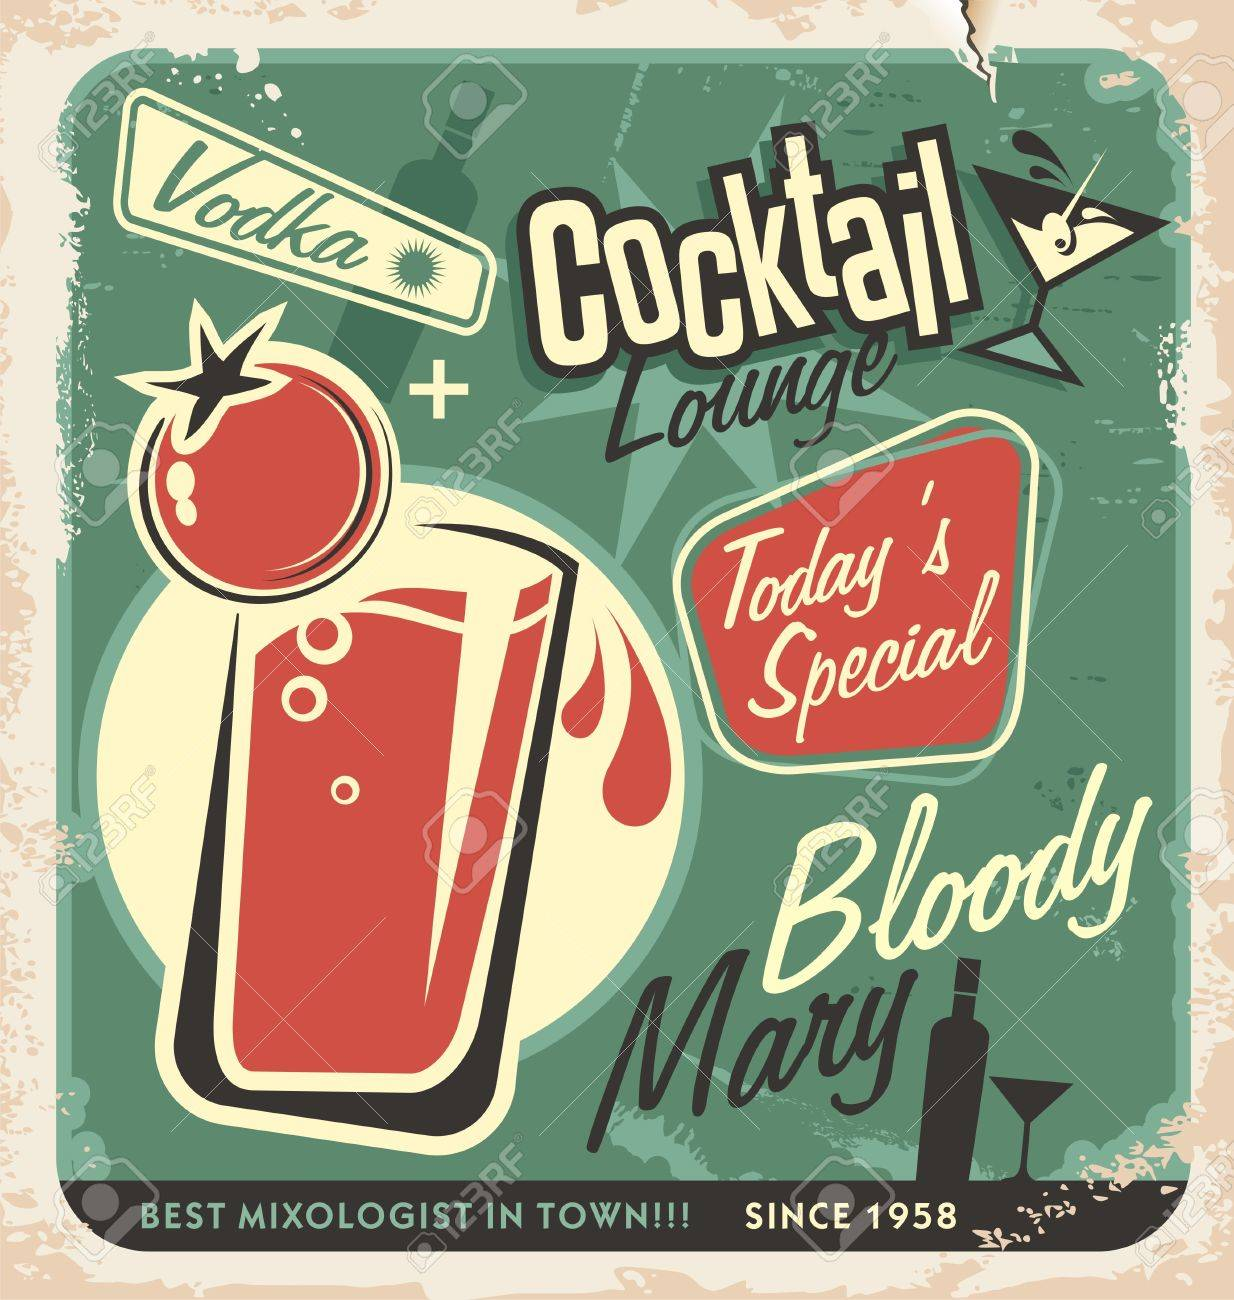 Promotional retro poster design for one of the most popular cocktails Bloody Mary Vintage cocktail bar design with special daily offer Food and drink concept on scratched old textured paper - 21331455